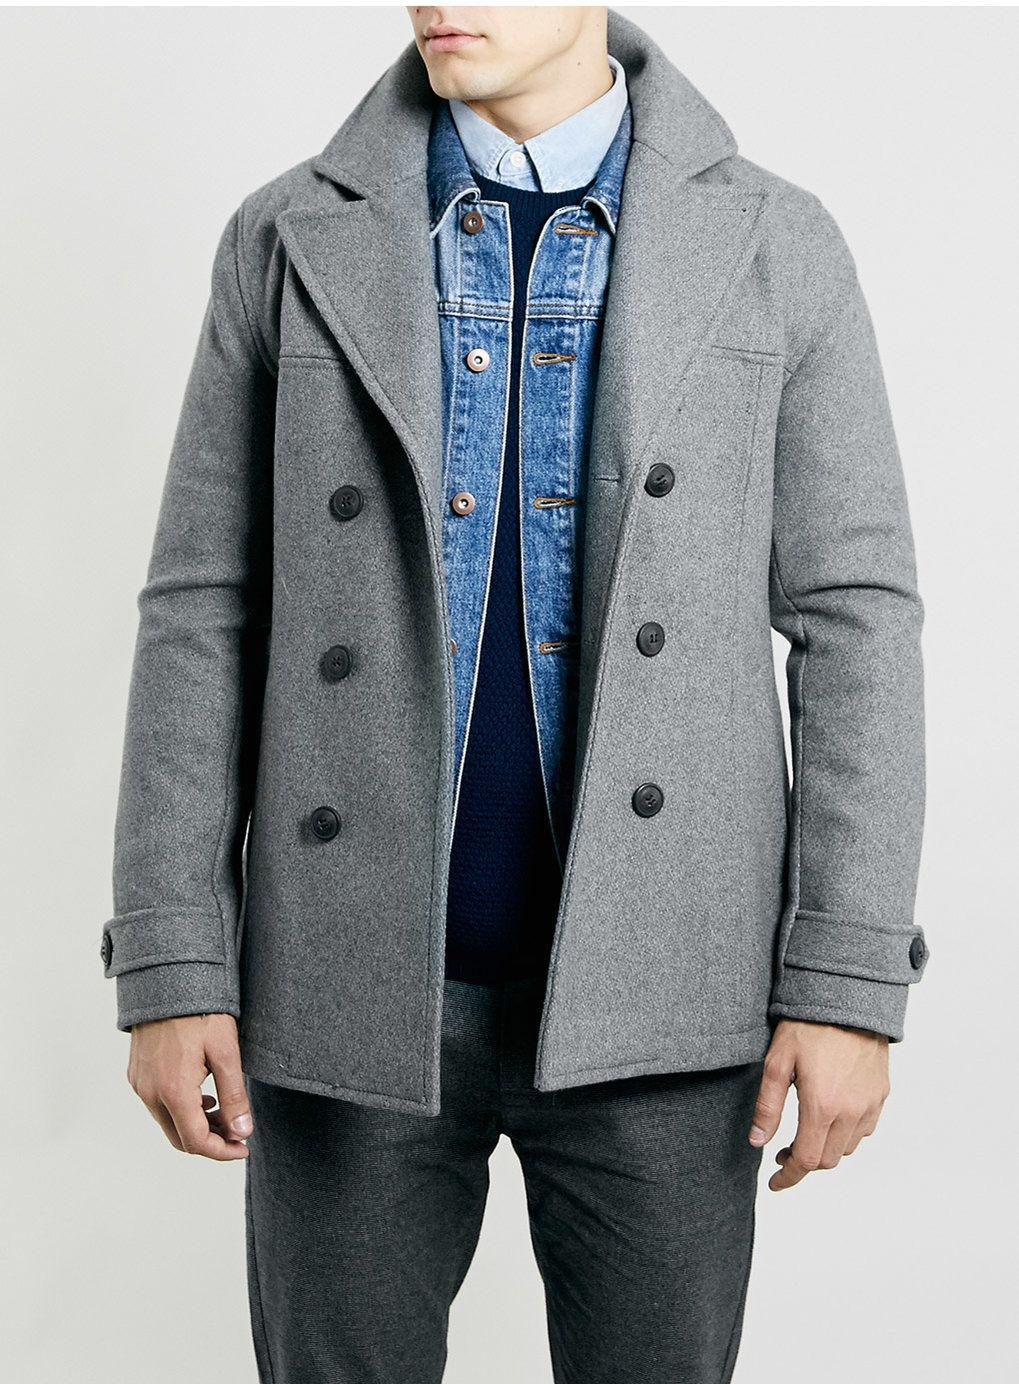 GREY WOOL blend SLIM PEACOAT | Grey, Wool and Peacoats